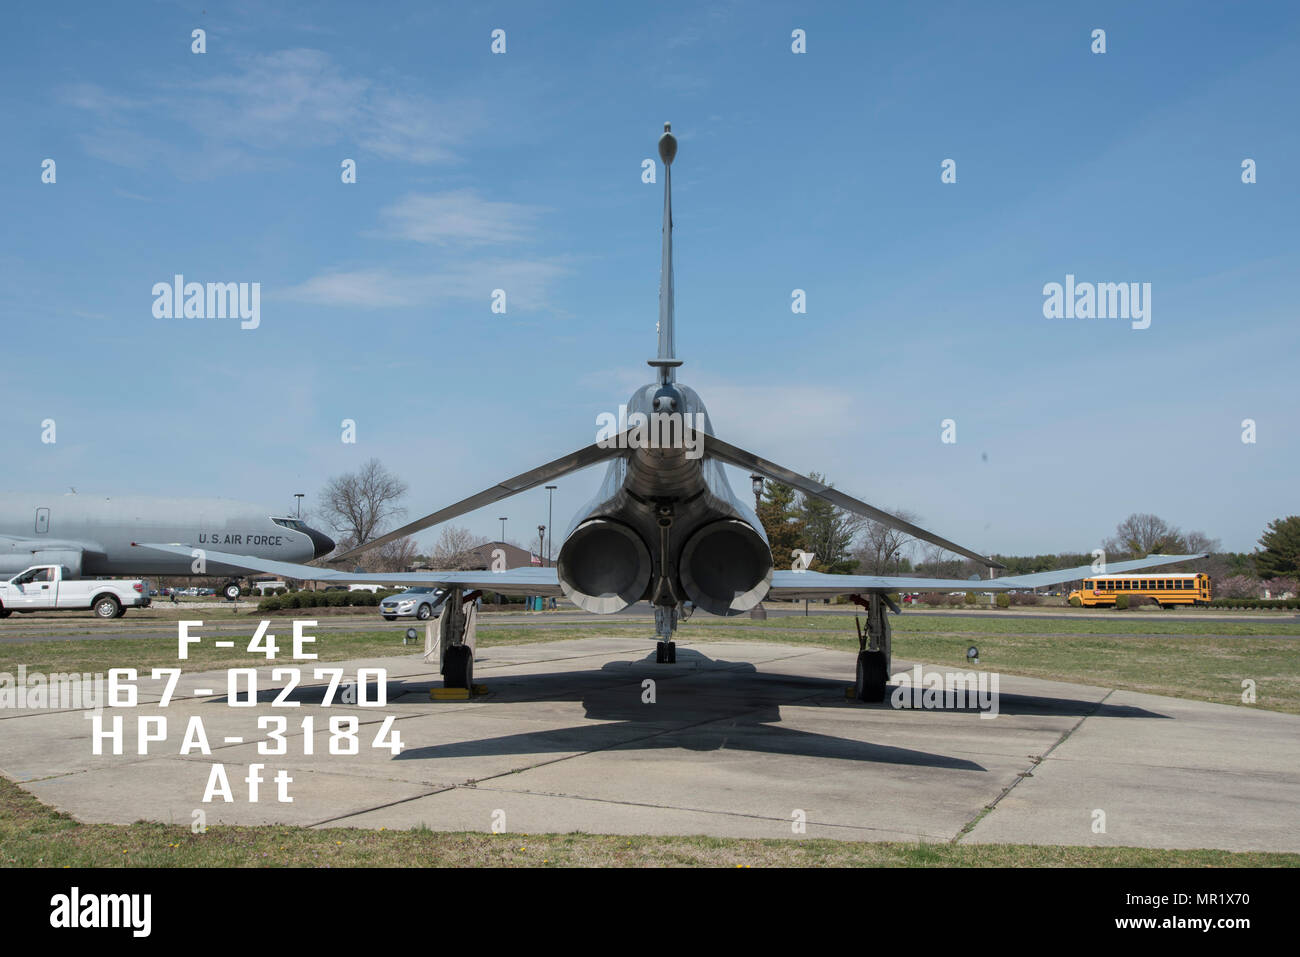 An aft view of a 108th Wing, New Jersey Air National Guard, F-4E sitting on display at Joint Base McGuire-Dix-Lakehurst, New Jersey, April 3, 2017. F4-E, 67-0270, HPA-3184, Aft Stock Photo